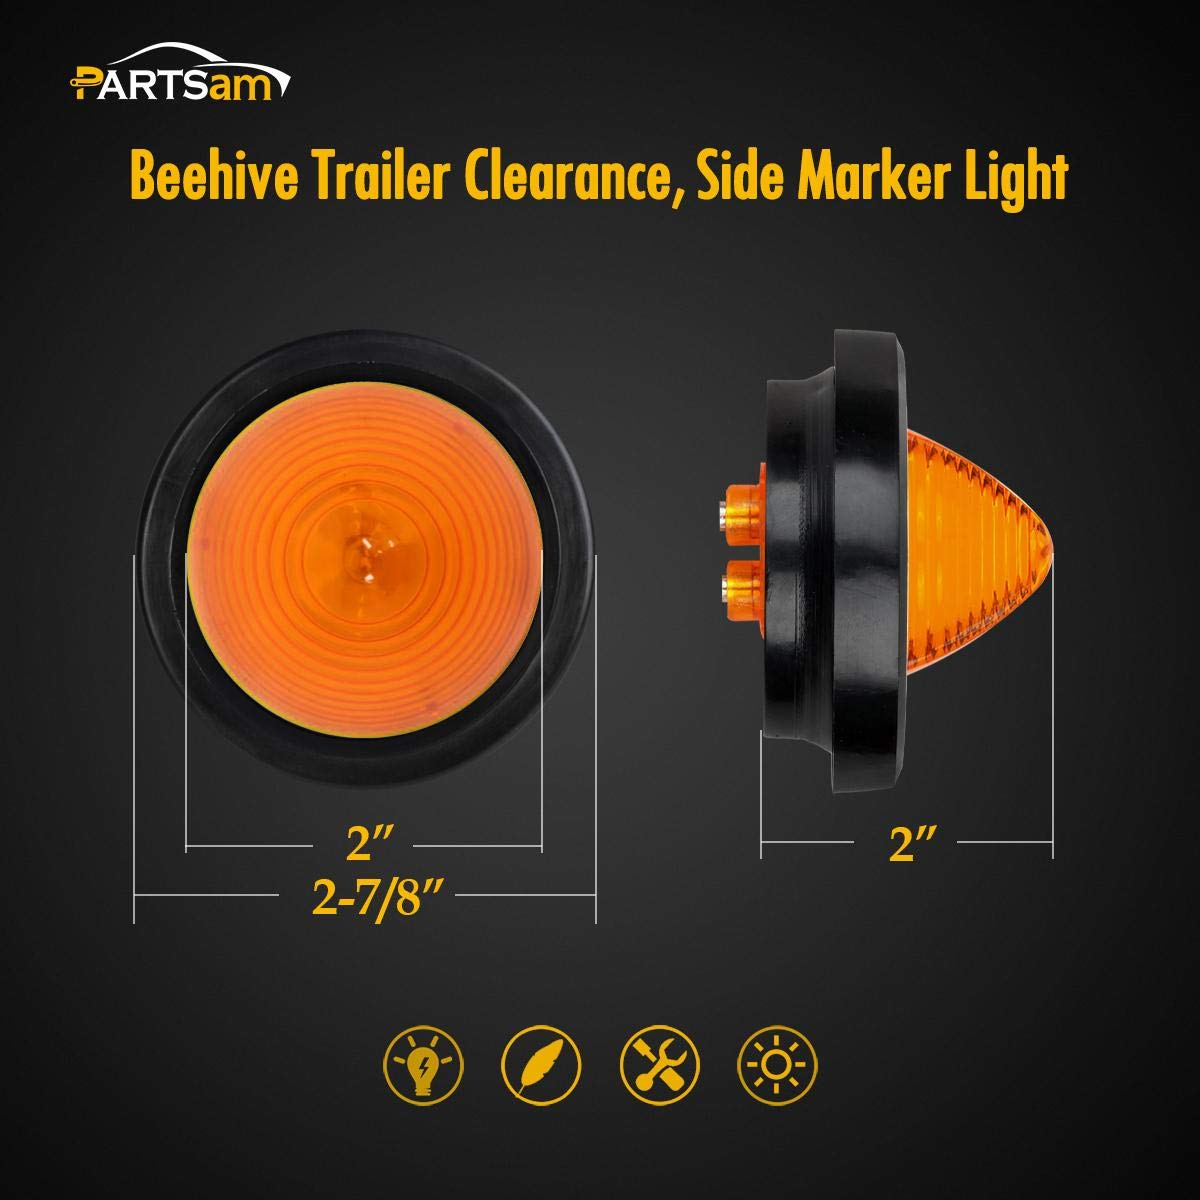 Partsam 5Pcs 2 Round Beehive Amber Led Side Marker Lights 9 Diodes Kit w//Rubber Grommet and Wire Plugs Universal for Motorcycle Truck Trailer RV